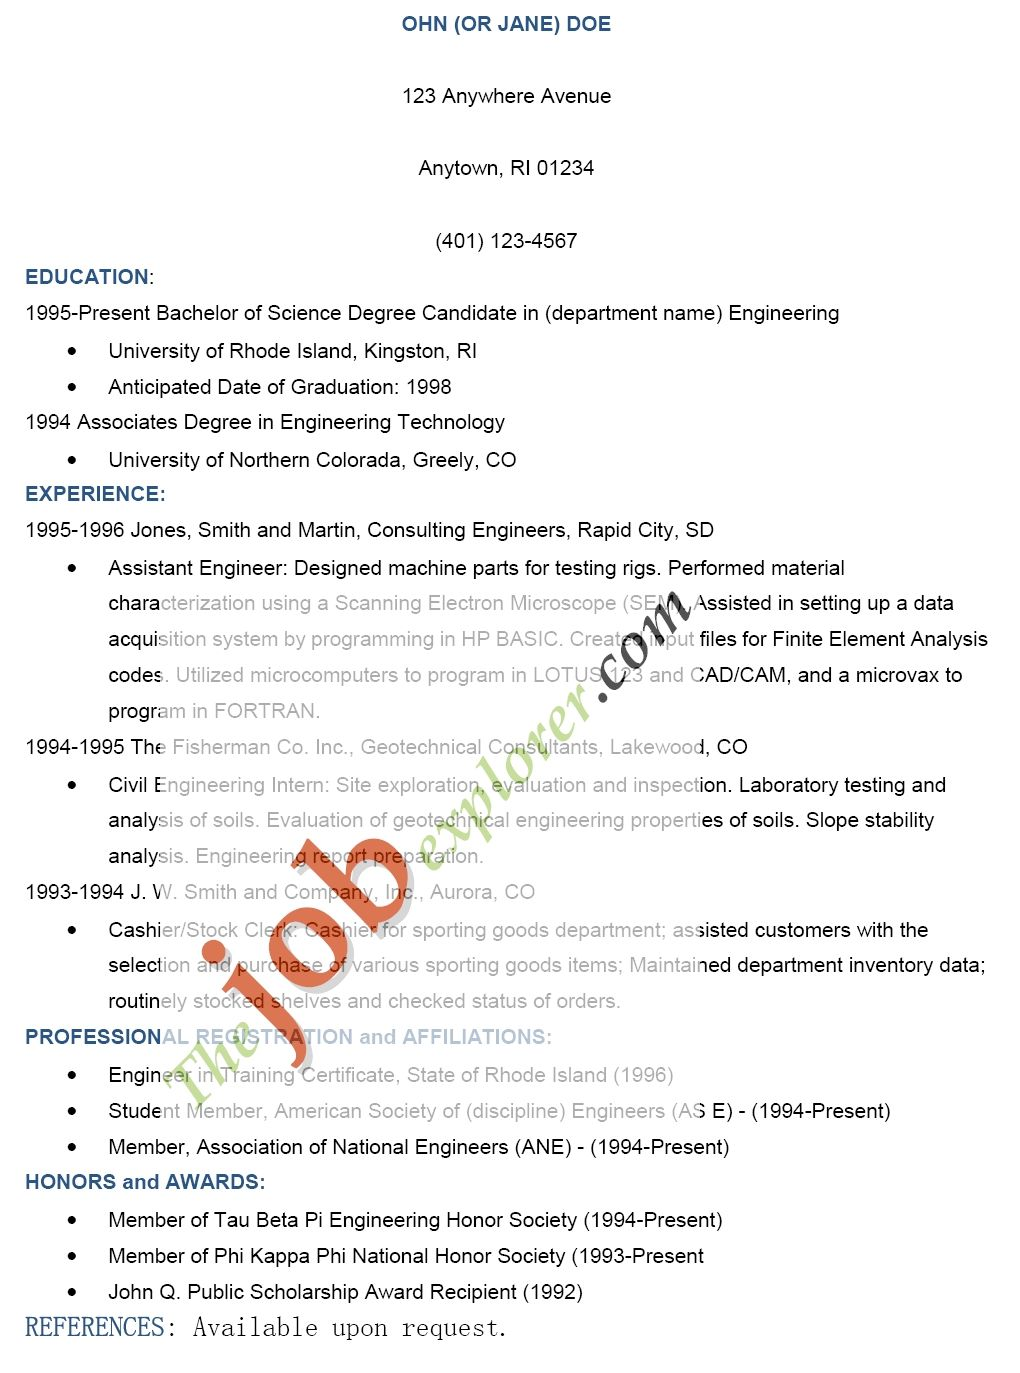 cover letter sample for consulting job proposal writer category ...